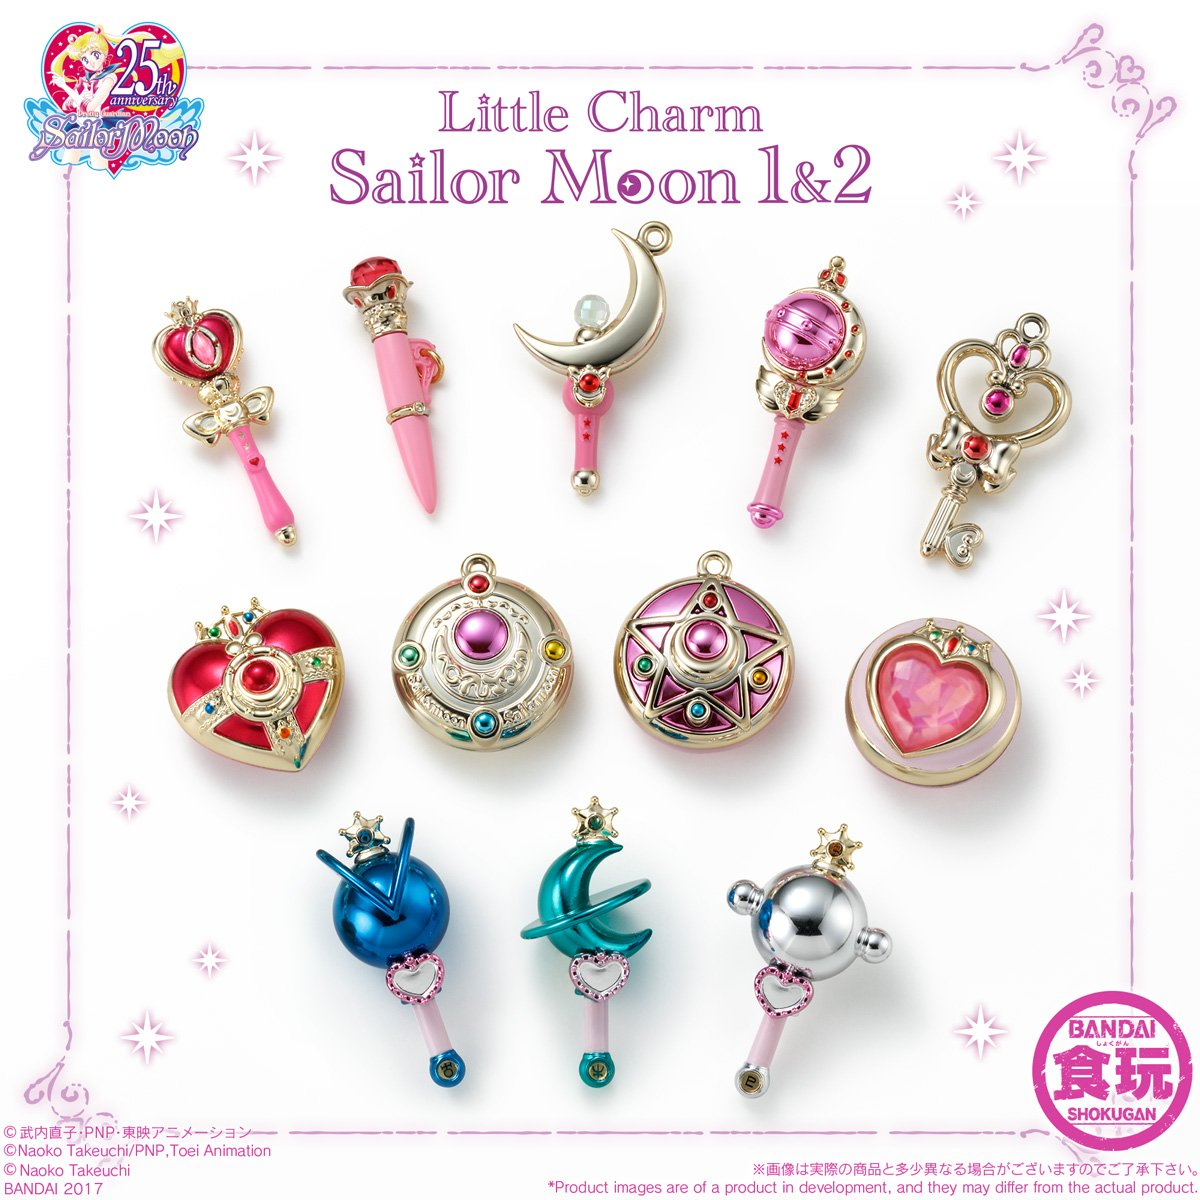 """sailor moon"" ""sailor moon toys"" ""sailor moon candy toys"" ""sailor moon merchandise"" ""sailor moon collectibles"" ""sailor moon wand"" ""lip rod"" ""sailor moon compact"" ""sailor moon charm"" ""candy toy"" bandai shop anime japan"